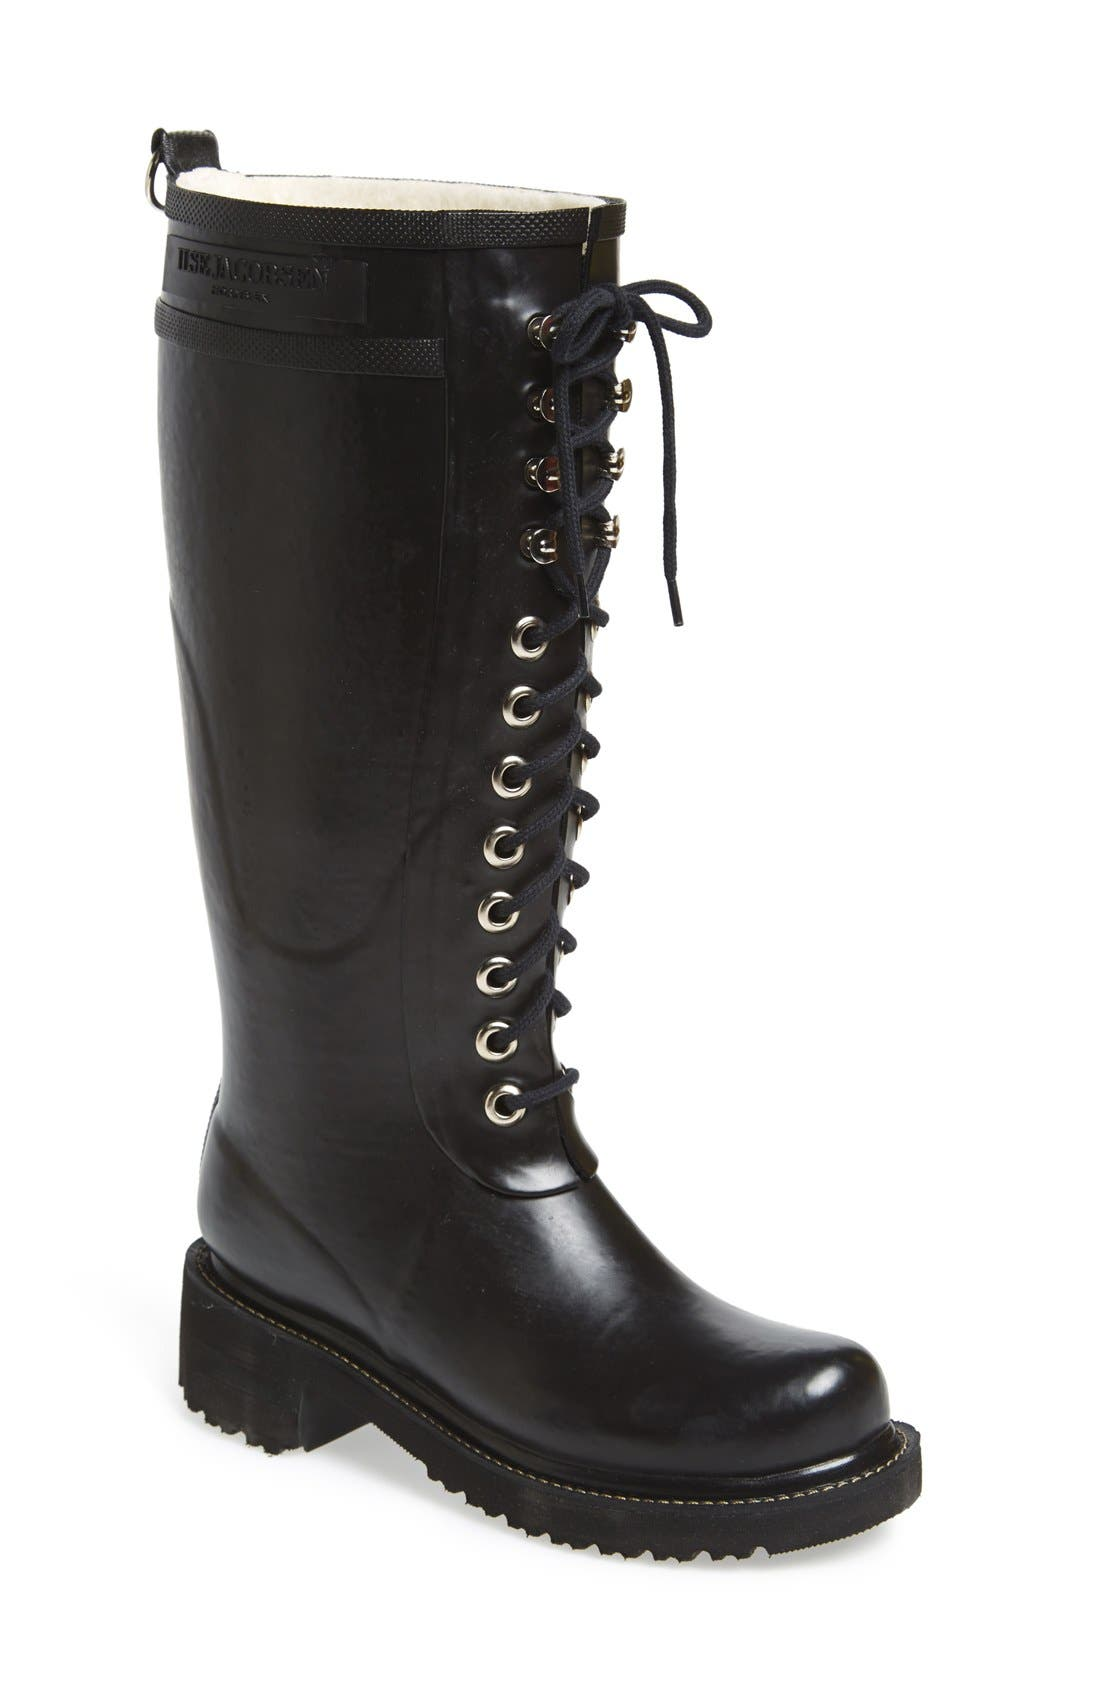 Ilse Jacobsen Waterproof Lace-Up Snow/Rain Boot (Women) | Nordstrom